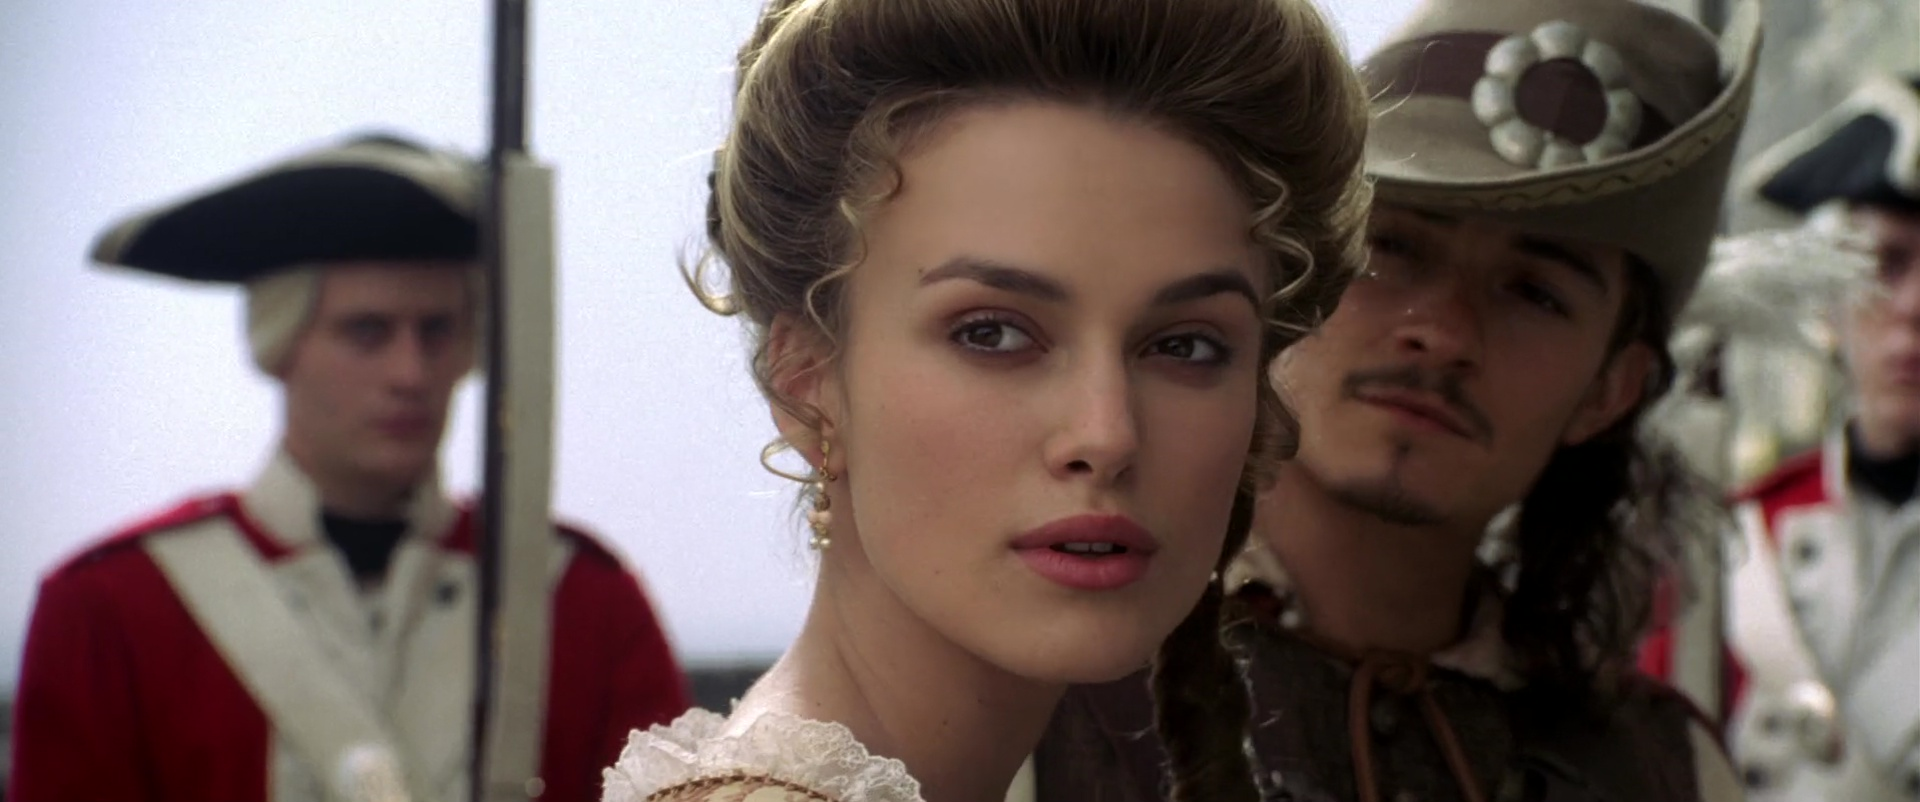 keira knightley elizabeth swann pirate caraibe carribean disney